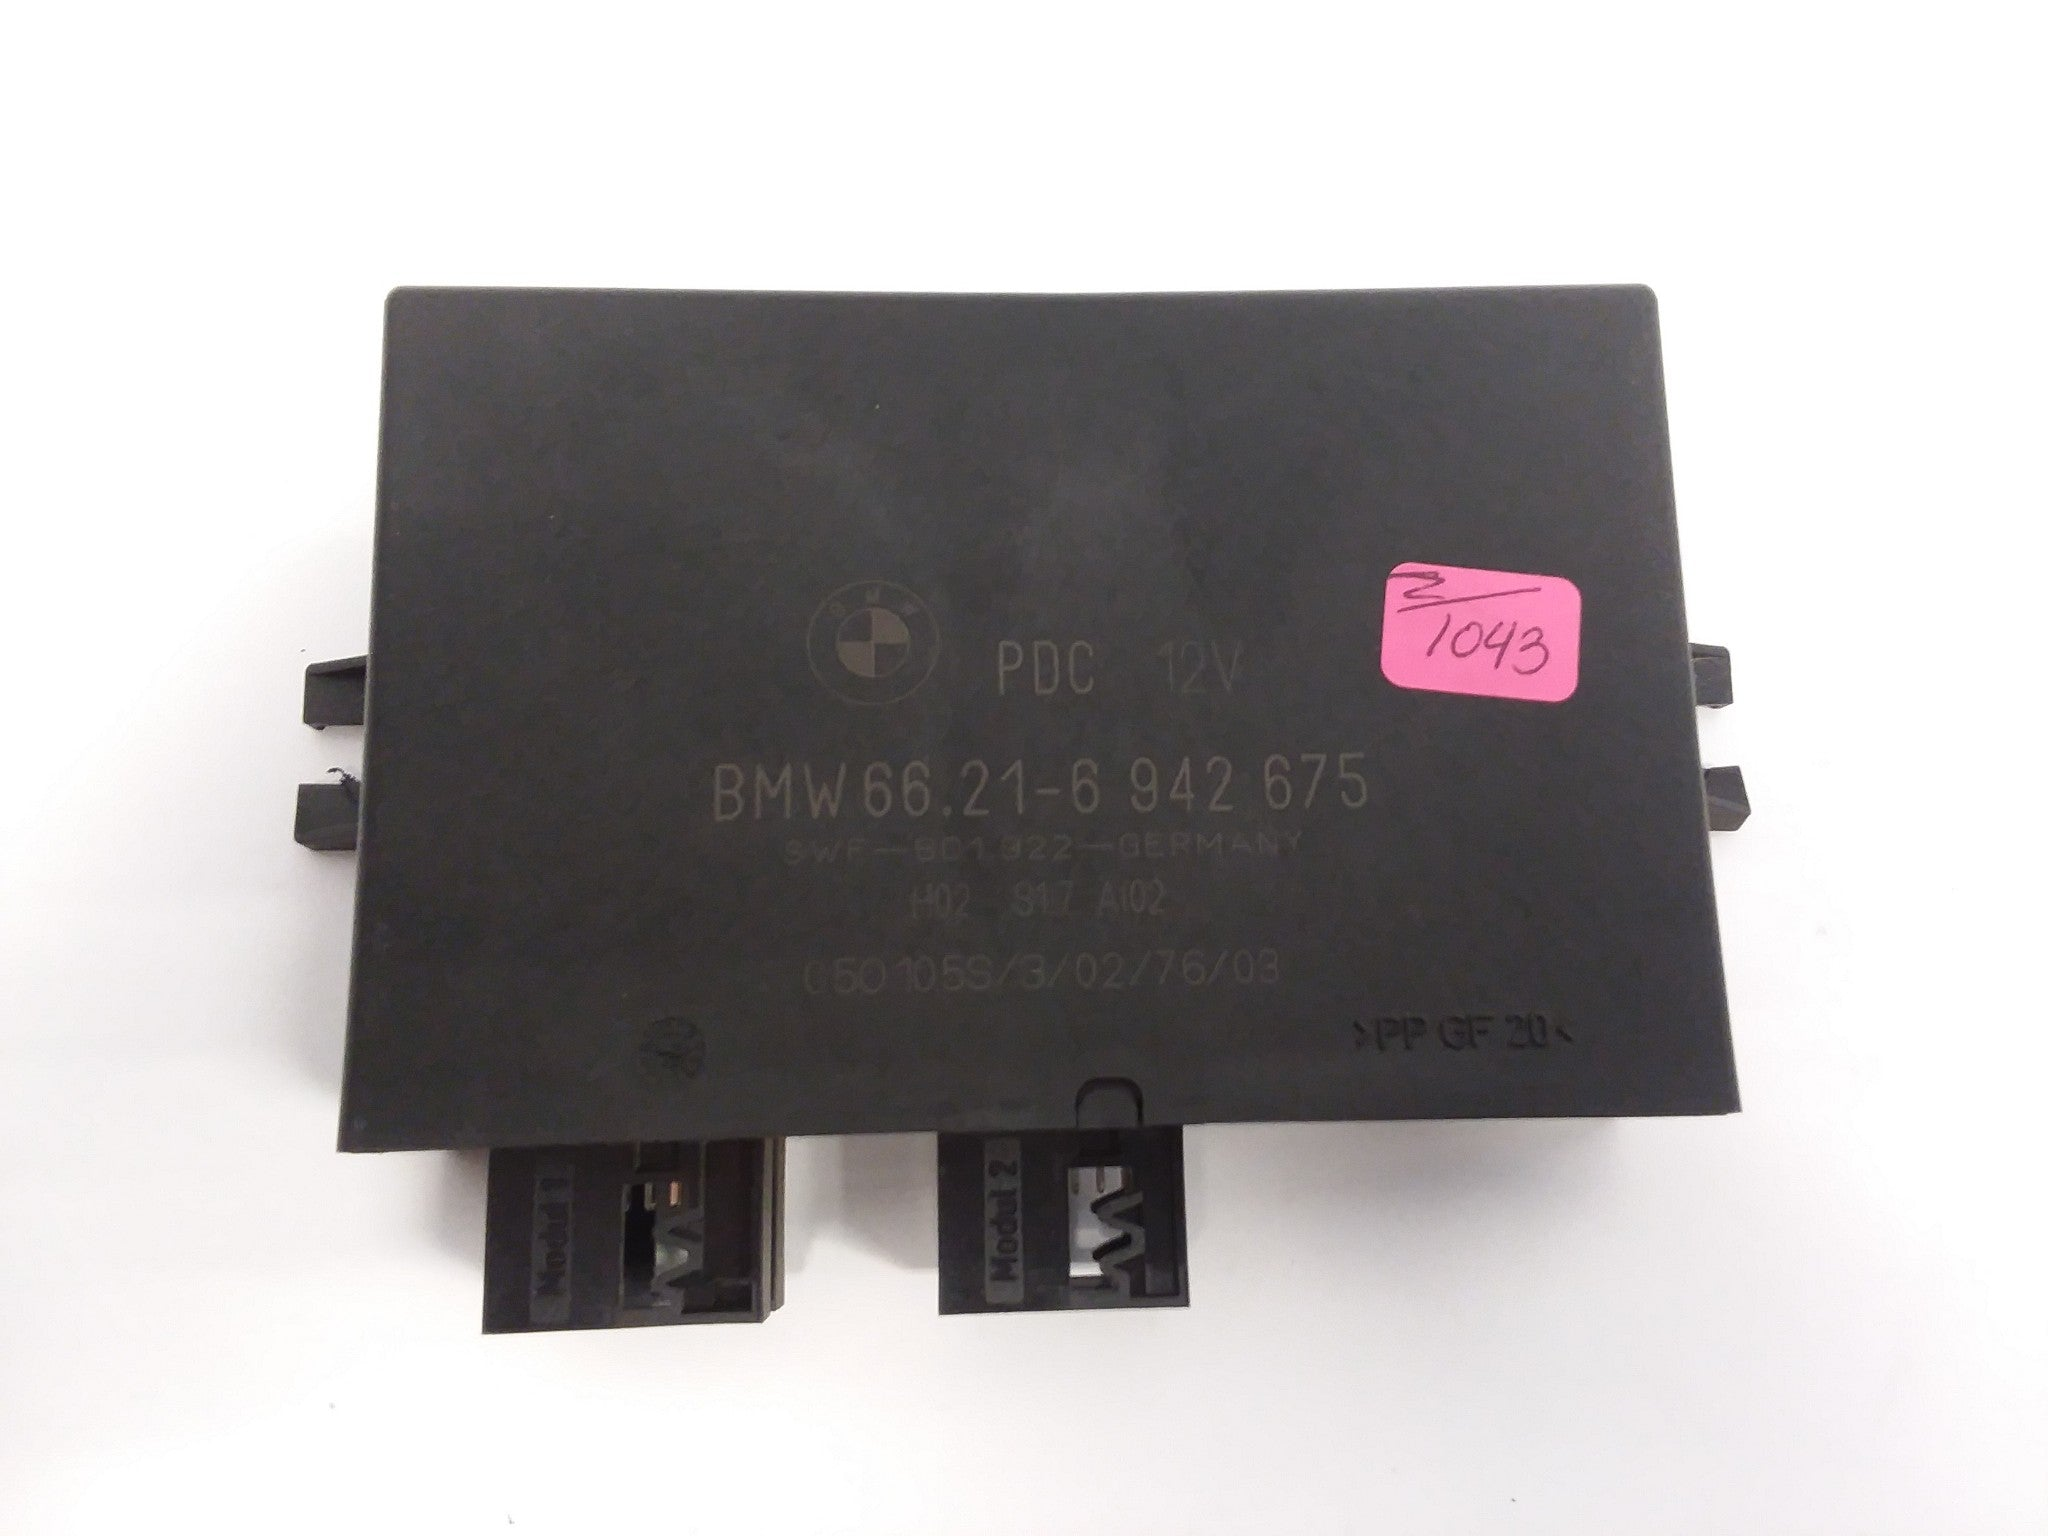 02-08 Mini Cooper R50 R52 R53 Active Parking Distance Control Unit ECU 6942675